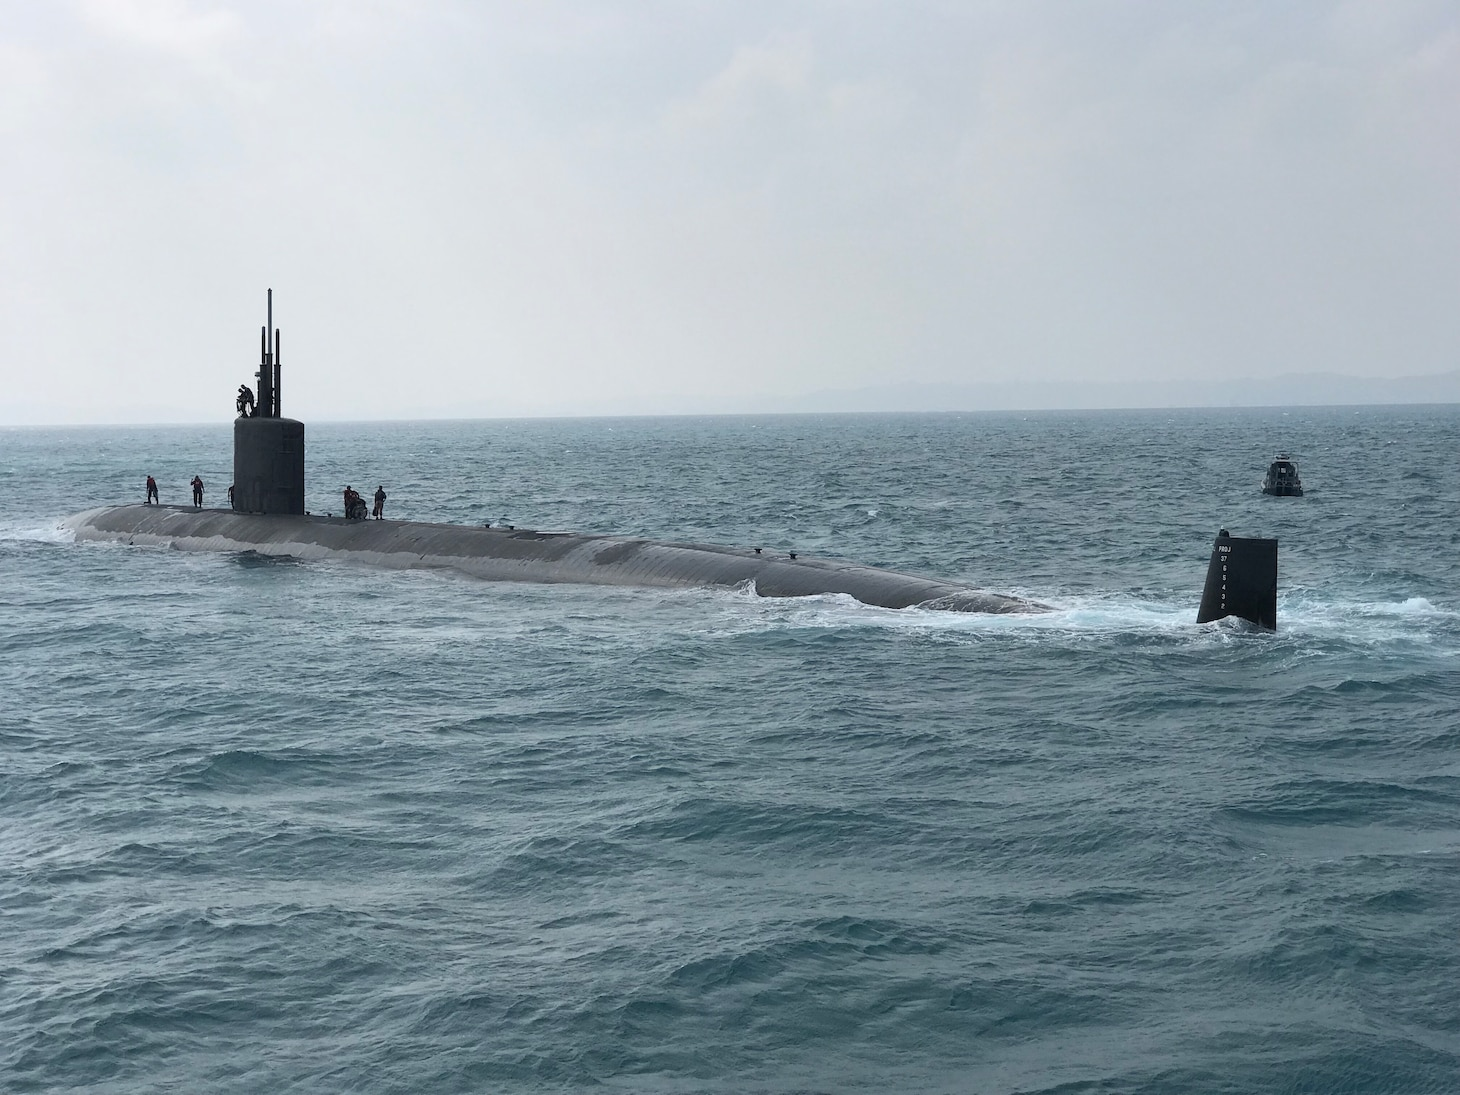 WATERS SOUTH OF JAPAN (Oct. 27, 2018) A Los Angeles-class fast attack submarine is participating in Exercise Keen Sword with Submarine Group 7 and Japan Maritime Self-Defense Force (JMSDF) Sailors and staff. Keen Sword, which began Oct. 29, is a joint/bilateral training exercise between the U.S. military and their JSDF counterparts. For the submarine force, it is an opportunity to demonstrate how both countries' submariners would detect, locate, track and engage enemy assets.